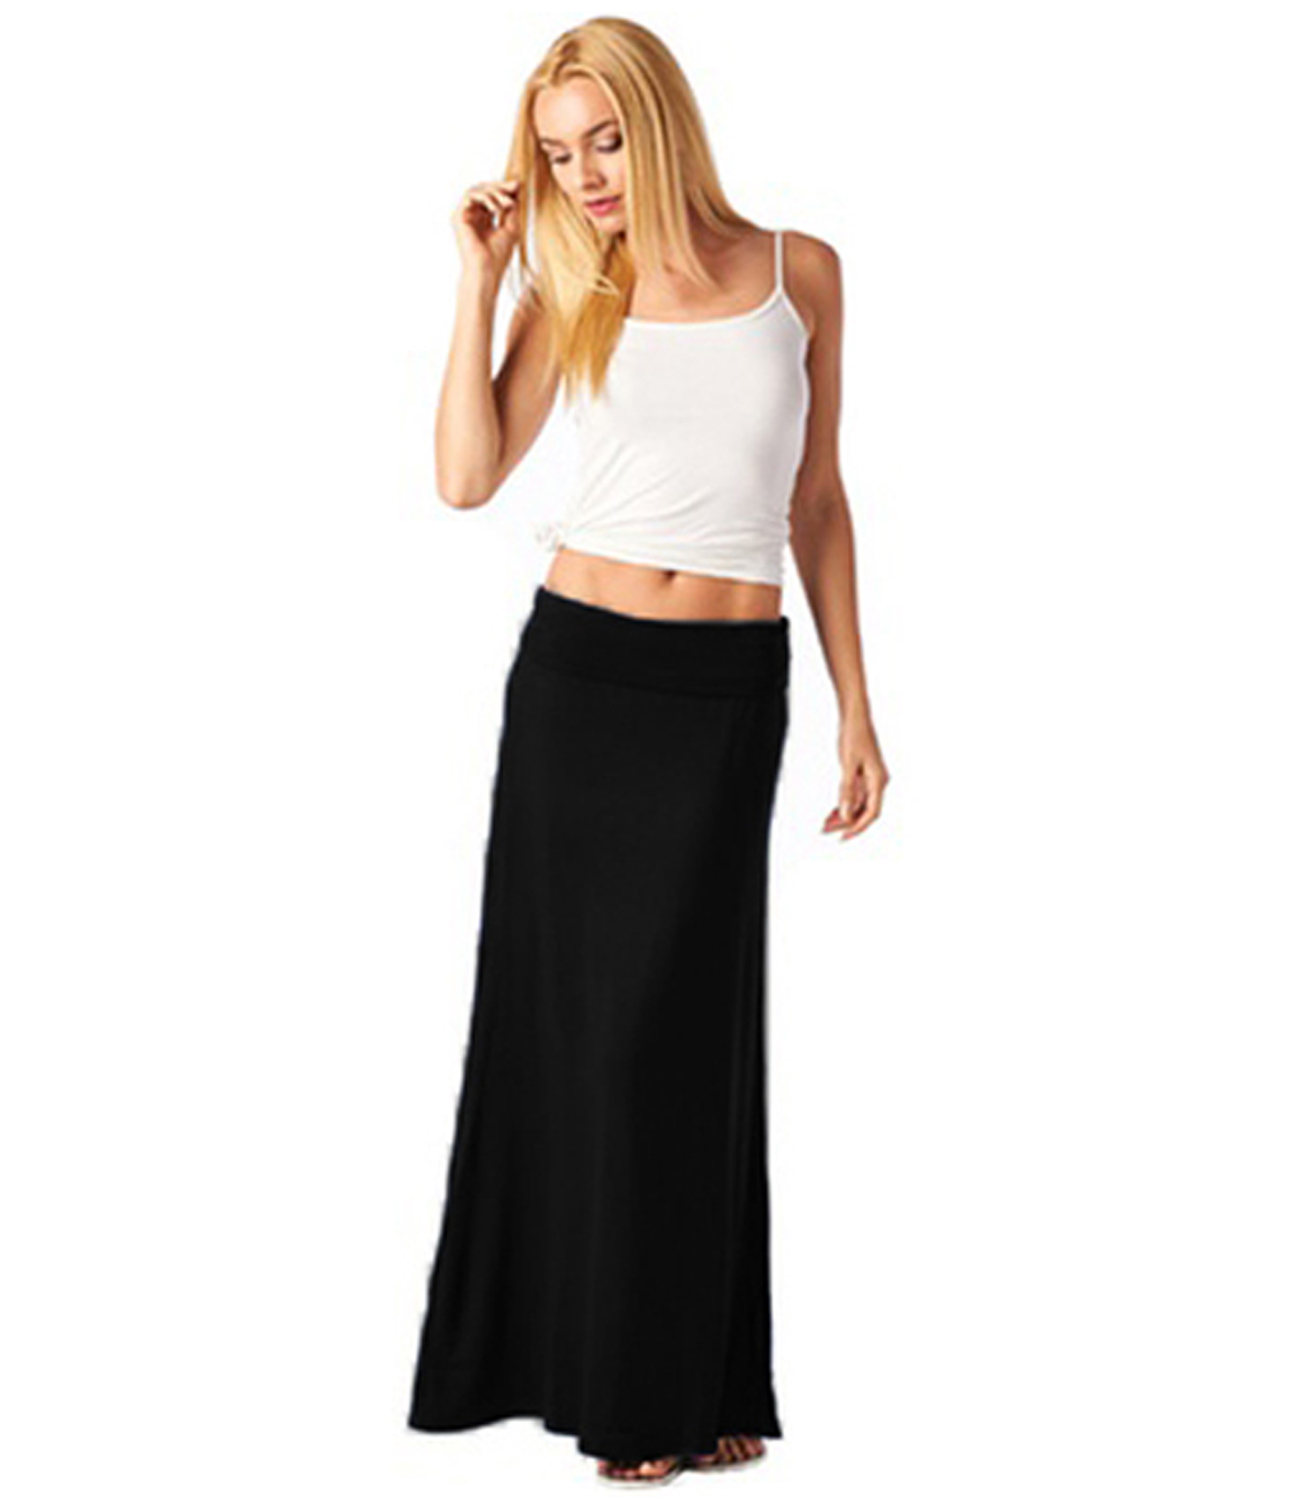 77033d0b2b Foldover Maxi Skirt - Solid Color Black - Rayon Spandex Sizes:S-L ...